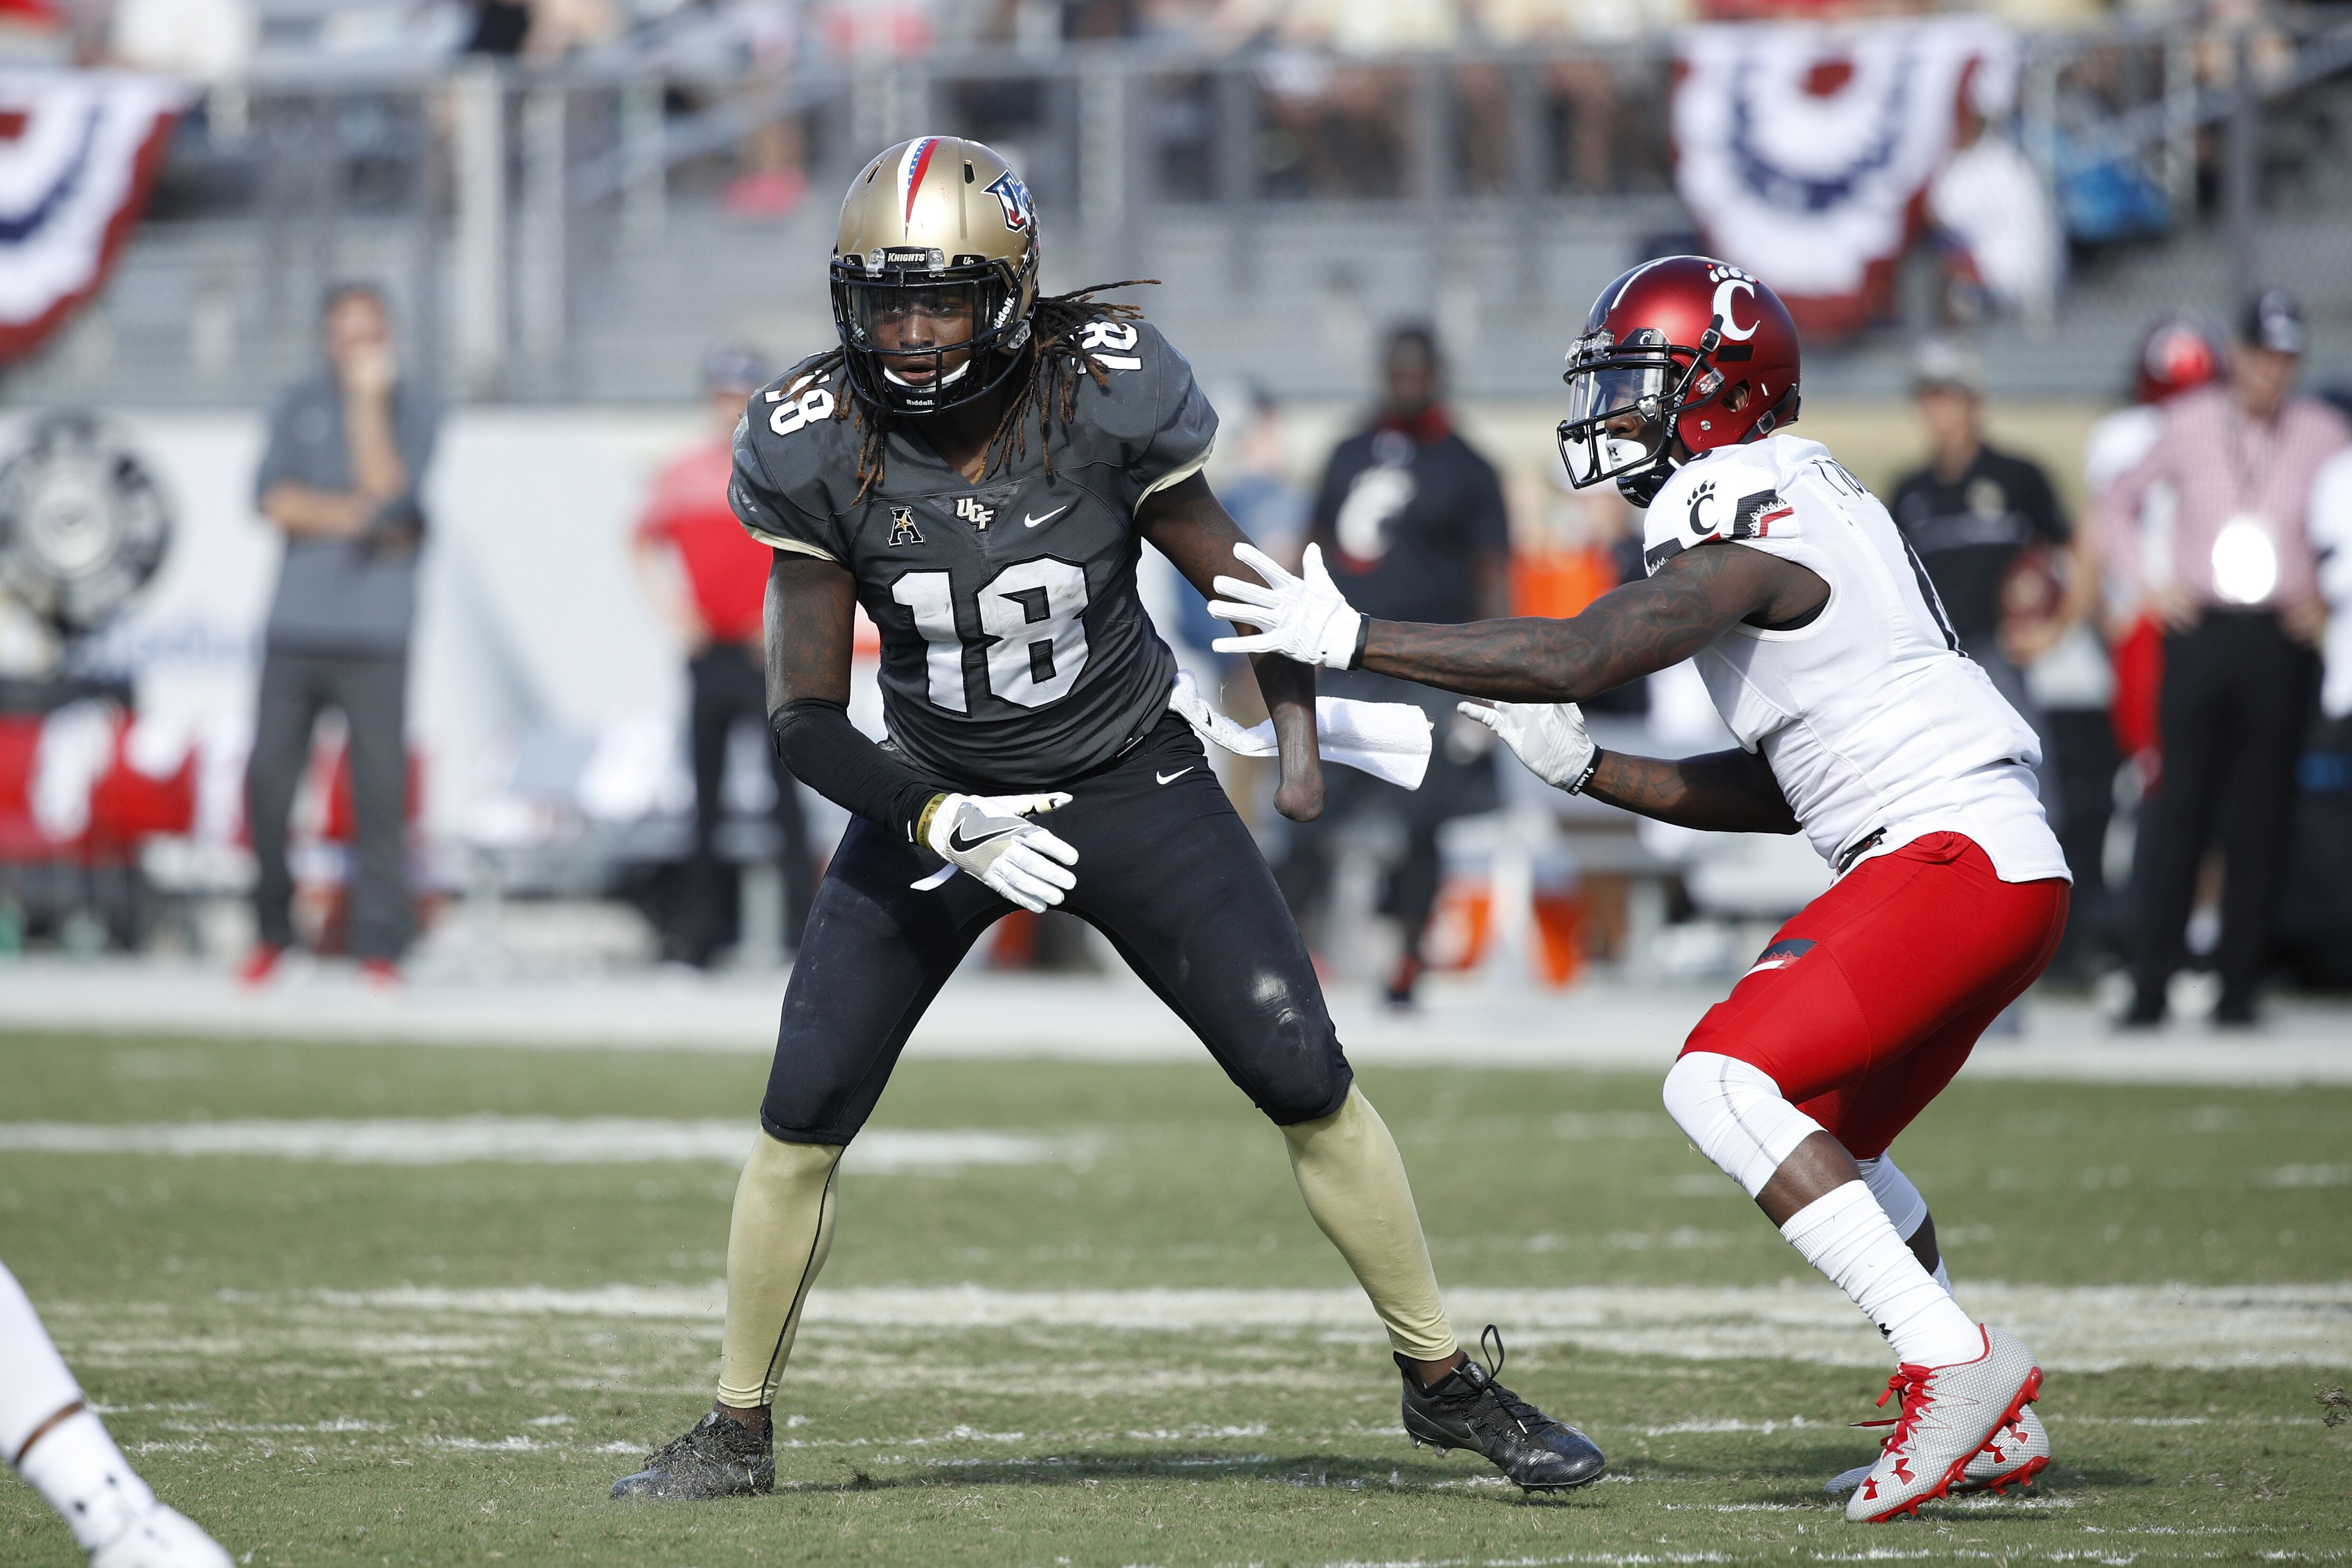 Need UCF Knights Football Tickets TicketCity offers 100 moneyback guarantee uptodate prices amp event information Over 1 million customers served since 1990!